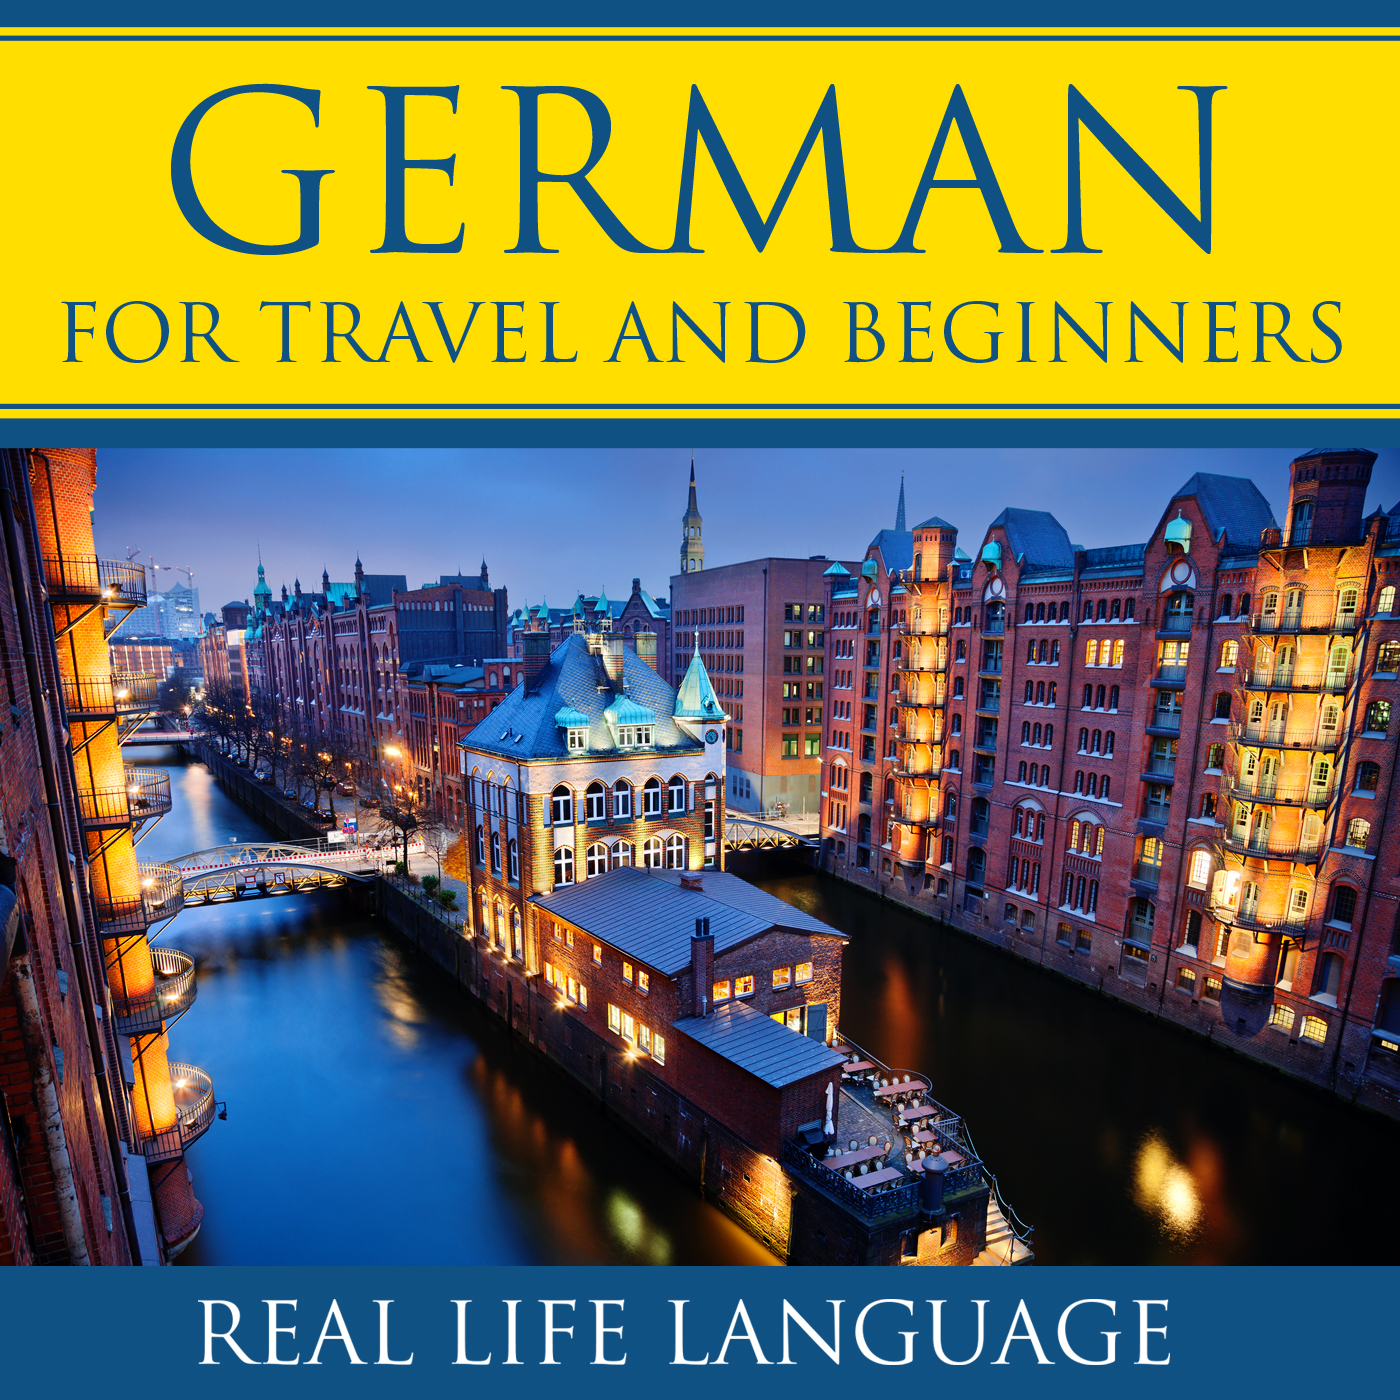 German for Travel and Beginners – Real Life Language